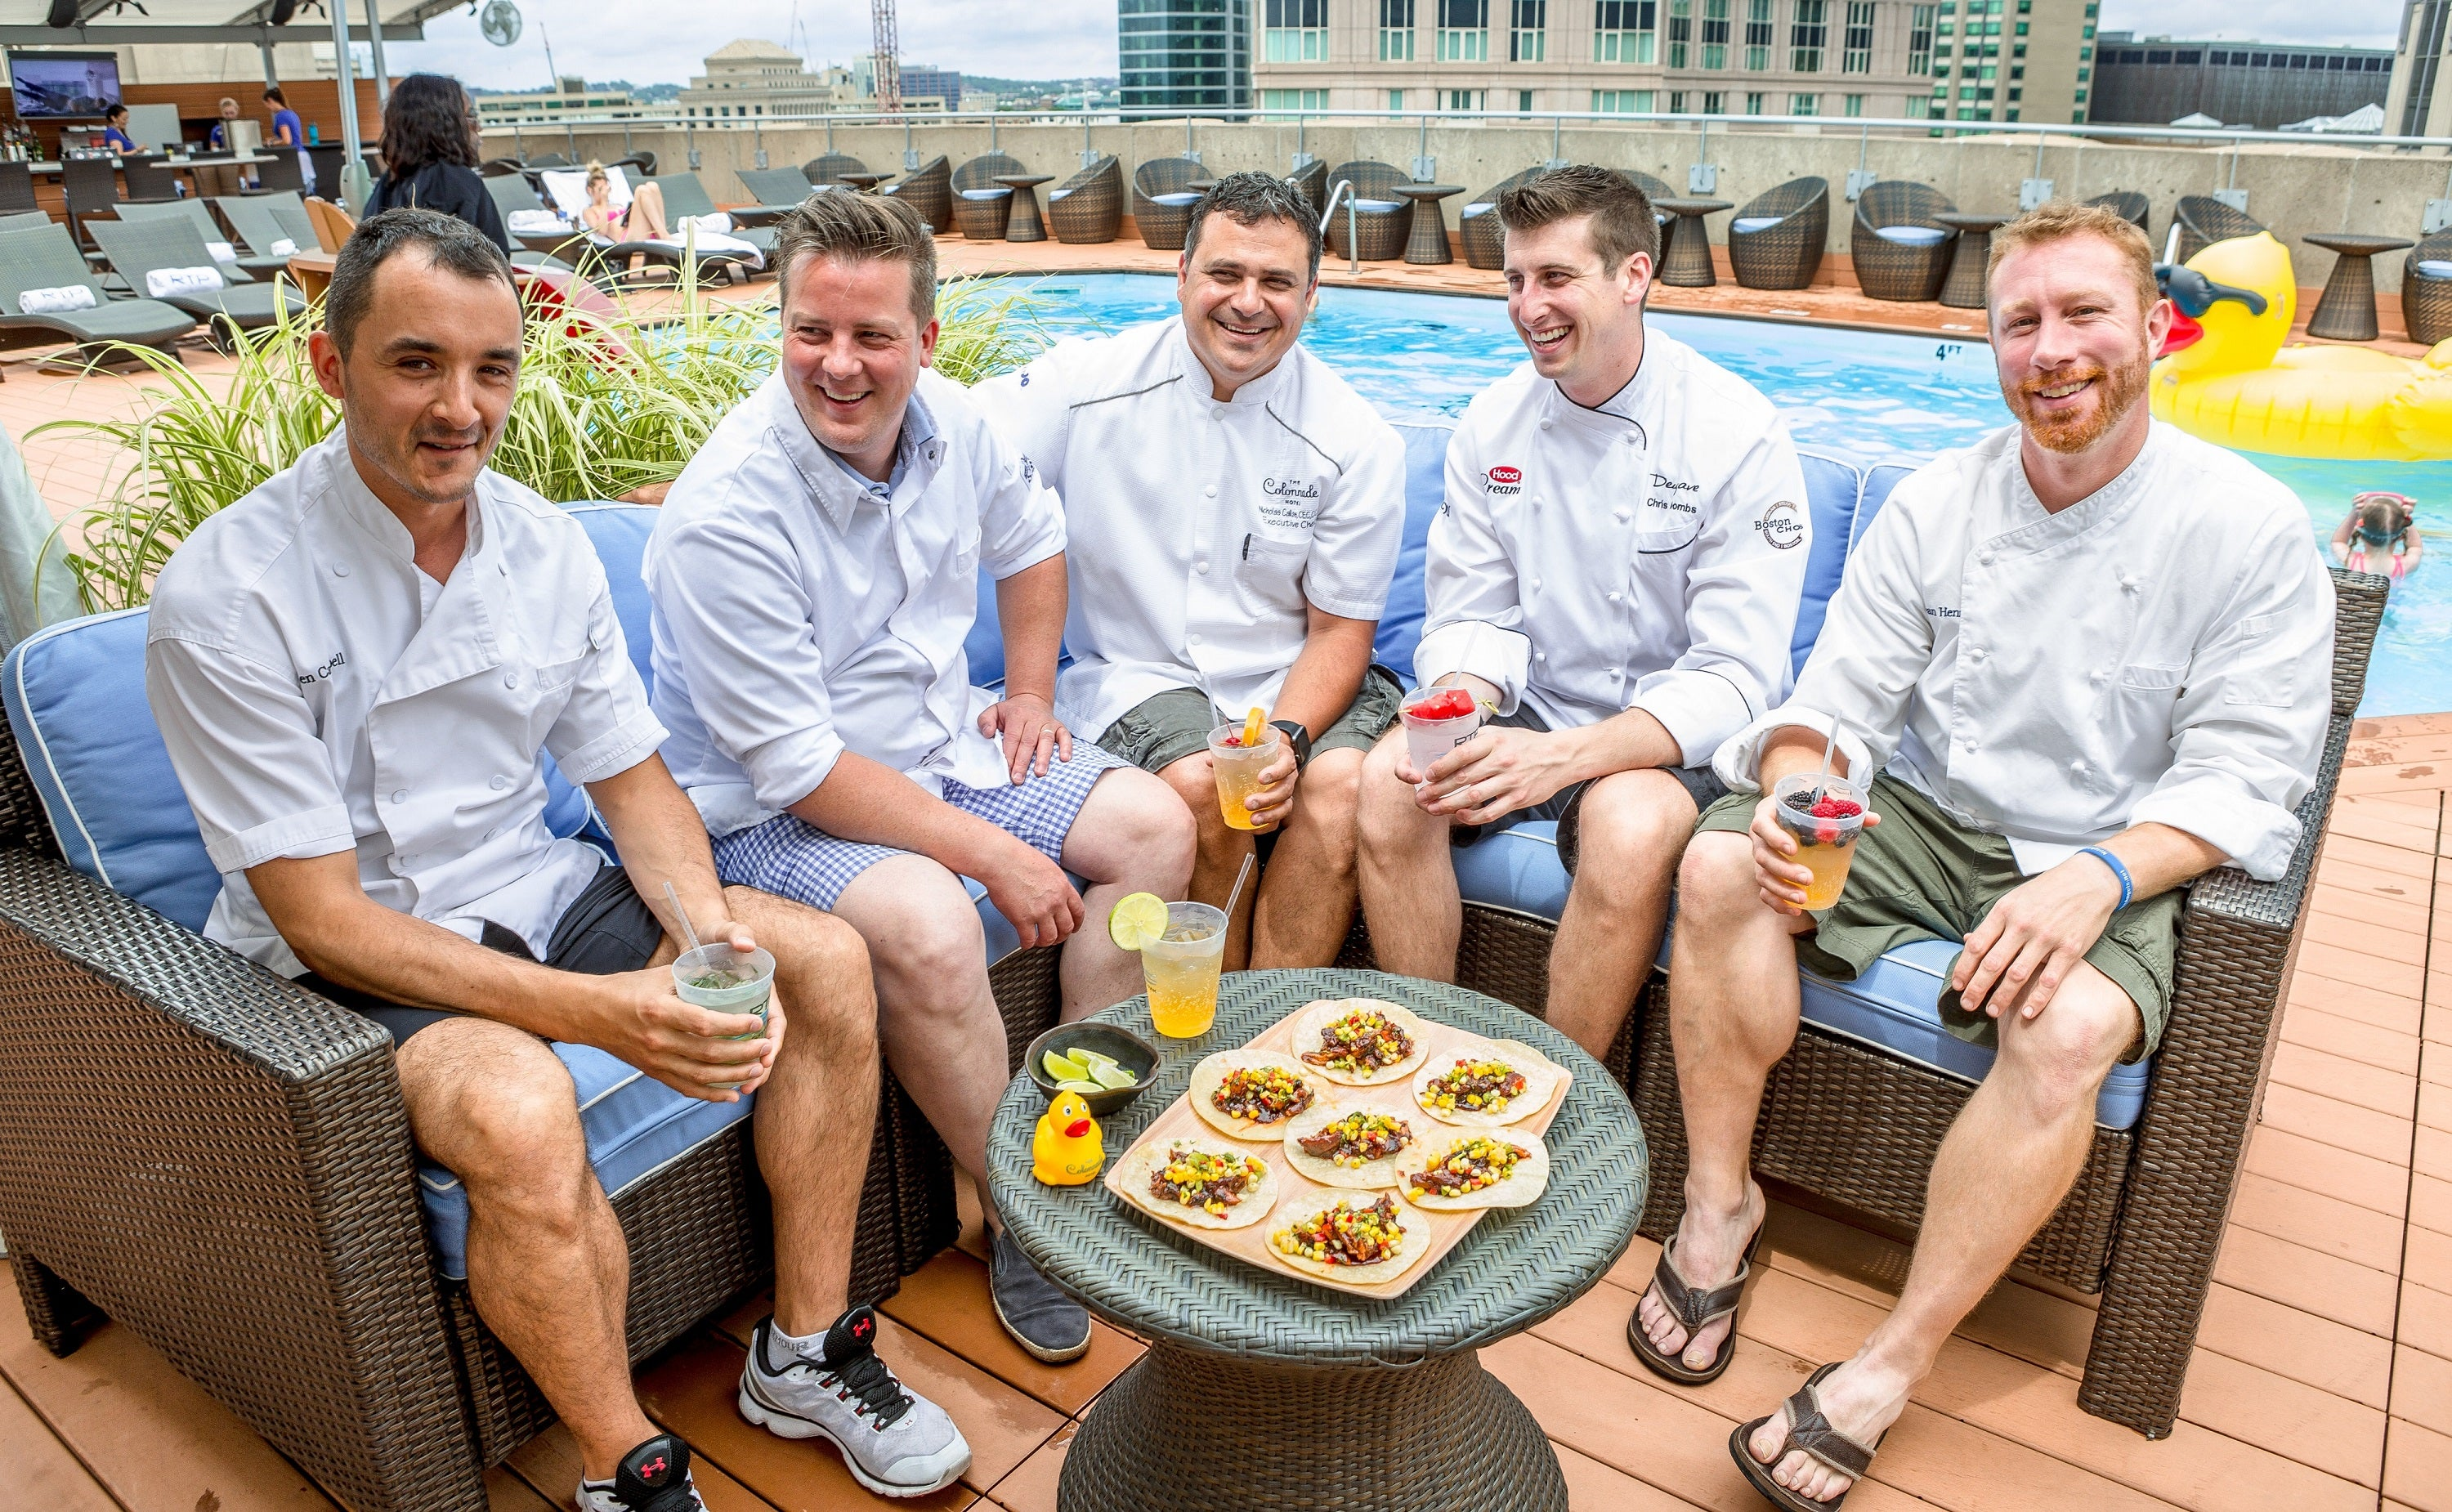 Allen Campbell, Matthew Gaudet, Nick Calias, Chris Coombs, and Evan Hennessy of the roofTOP Chefs series.